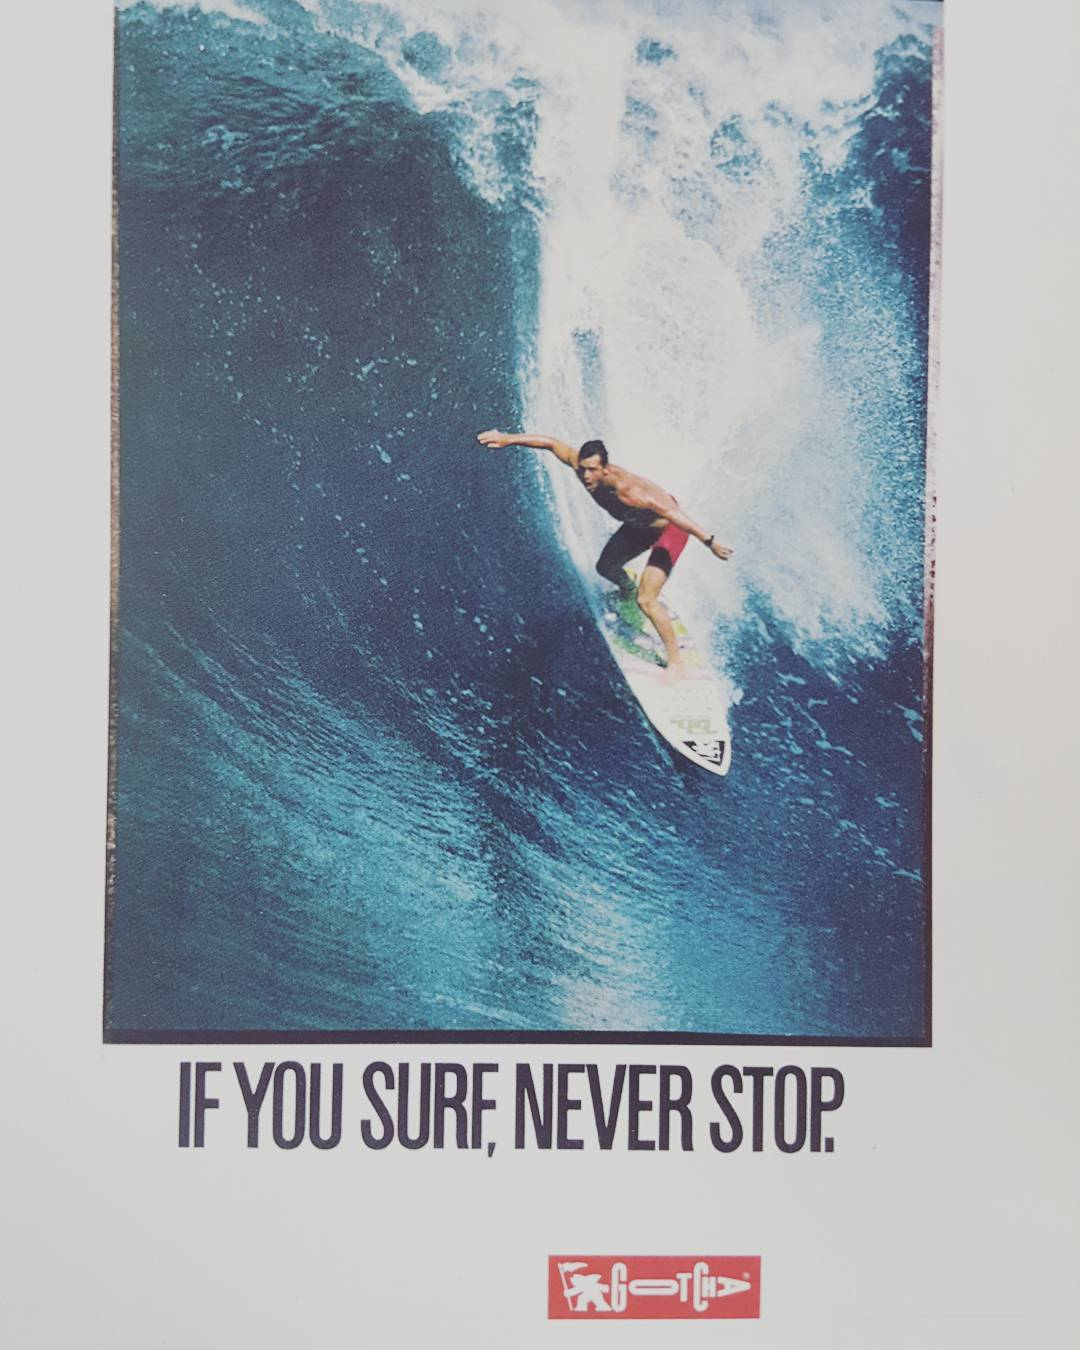 If you surf,  never stop.  #gotcha #iconsneverdie